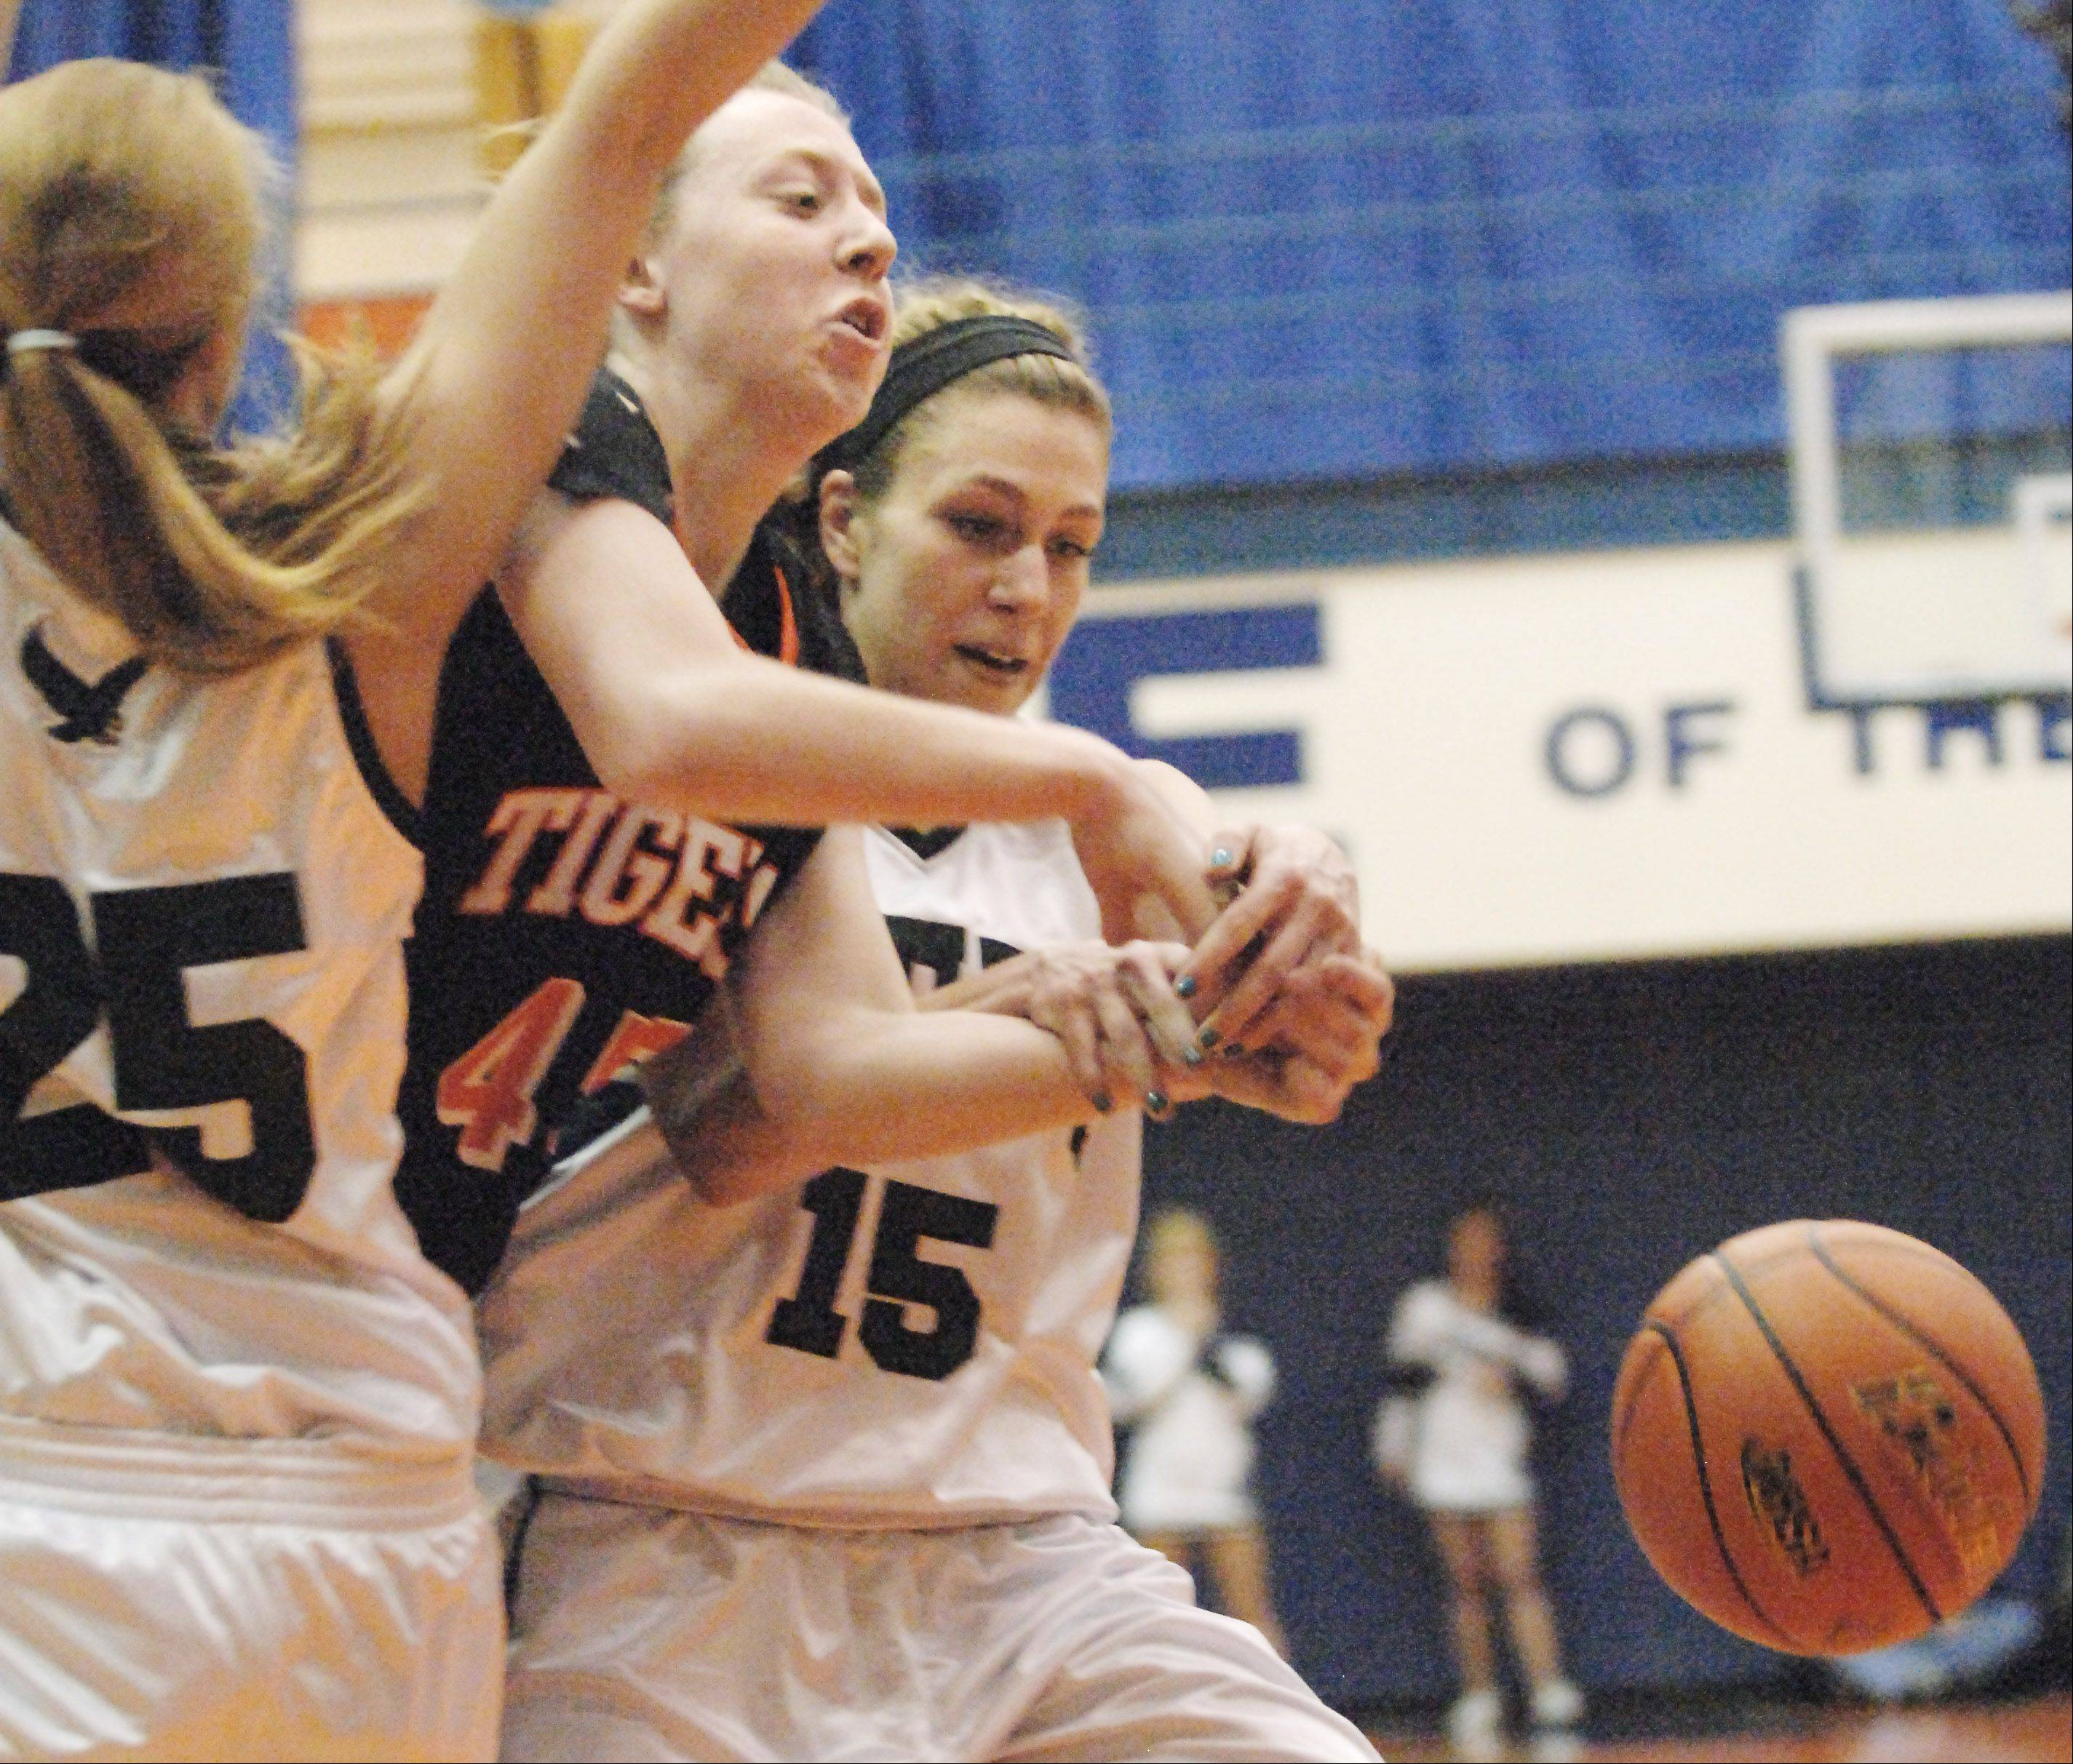 Wheaton Warrenville South's Meghan Waldron loses the ball out-of-bounds as she is guarded by Bartlett's Kristin Conniff and Katie Gutzwiller, right, during Thursday's Class 4A Hoffman Estates sectional championship game.